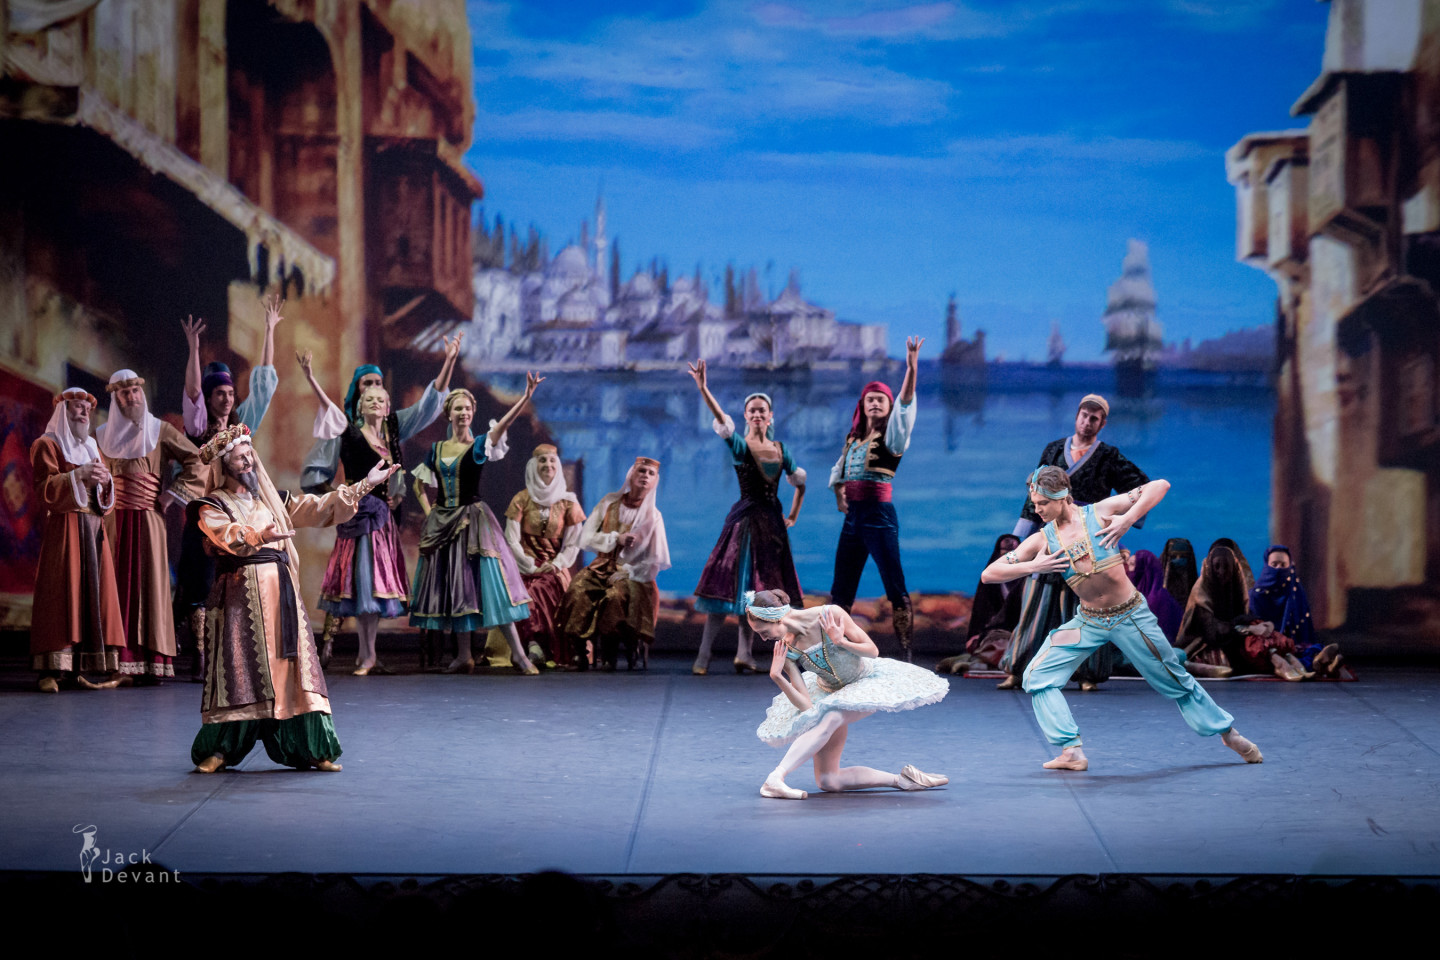 Le Corsaire Astkhik Ogannesian and Victor Lebedev in Pas des esclaves, Aleksey Malakhov as Seyd Pasha